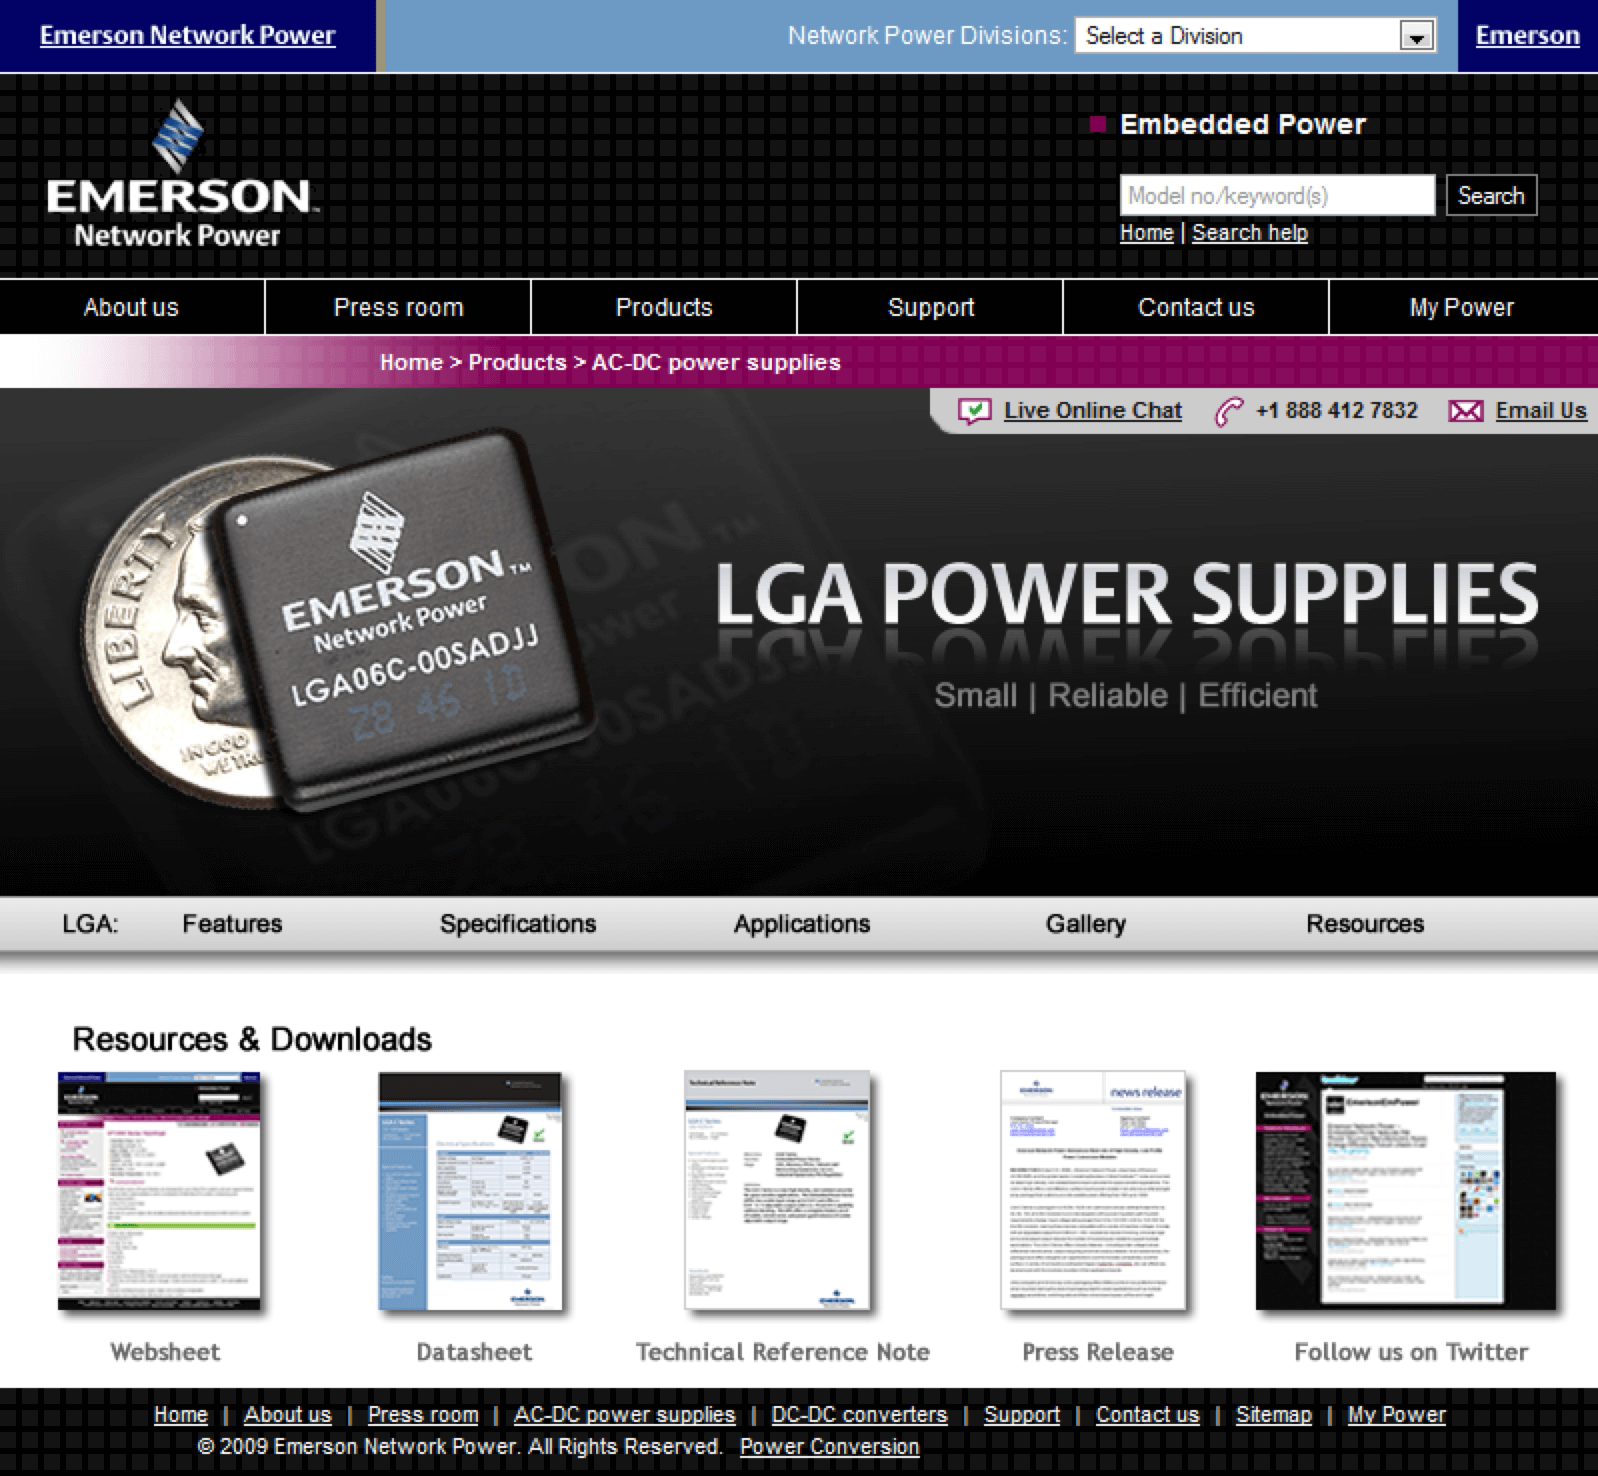 Emerson-LGA-Power-Supplies-Website-Design-Conference-Roadshow-Resources